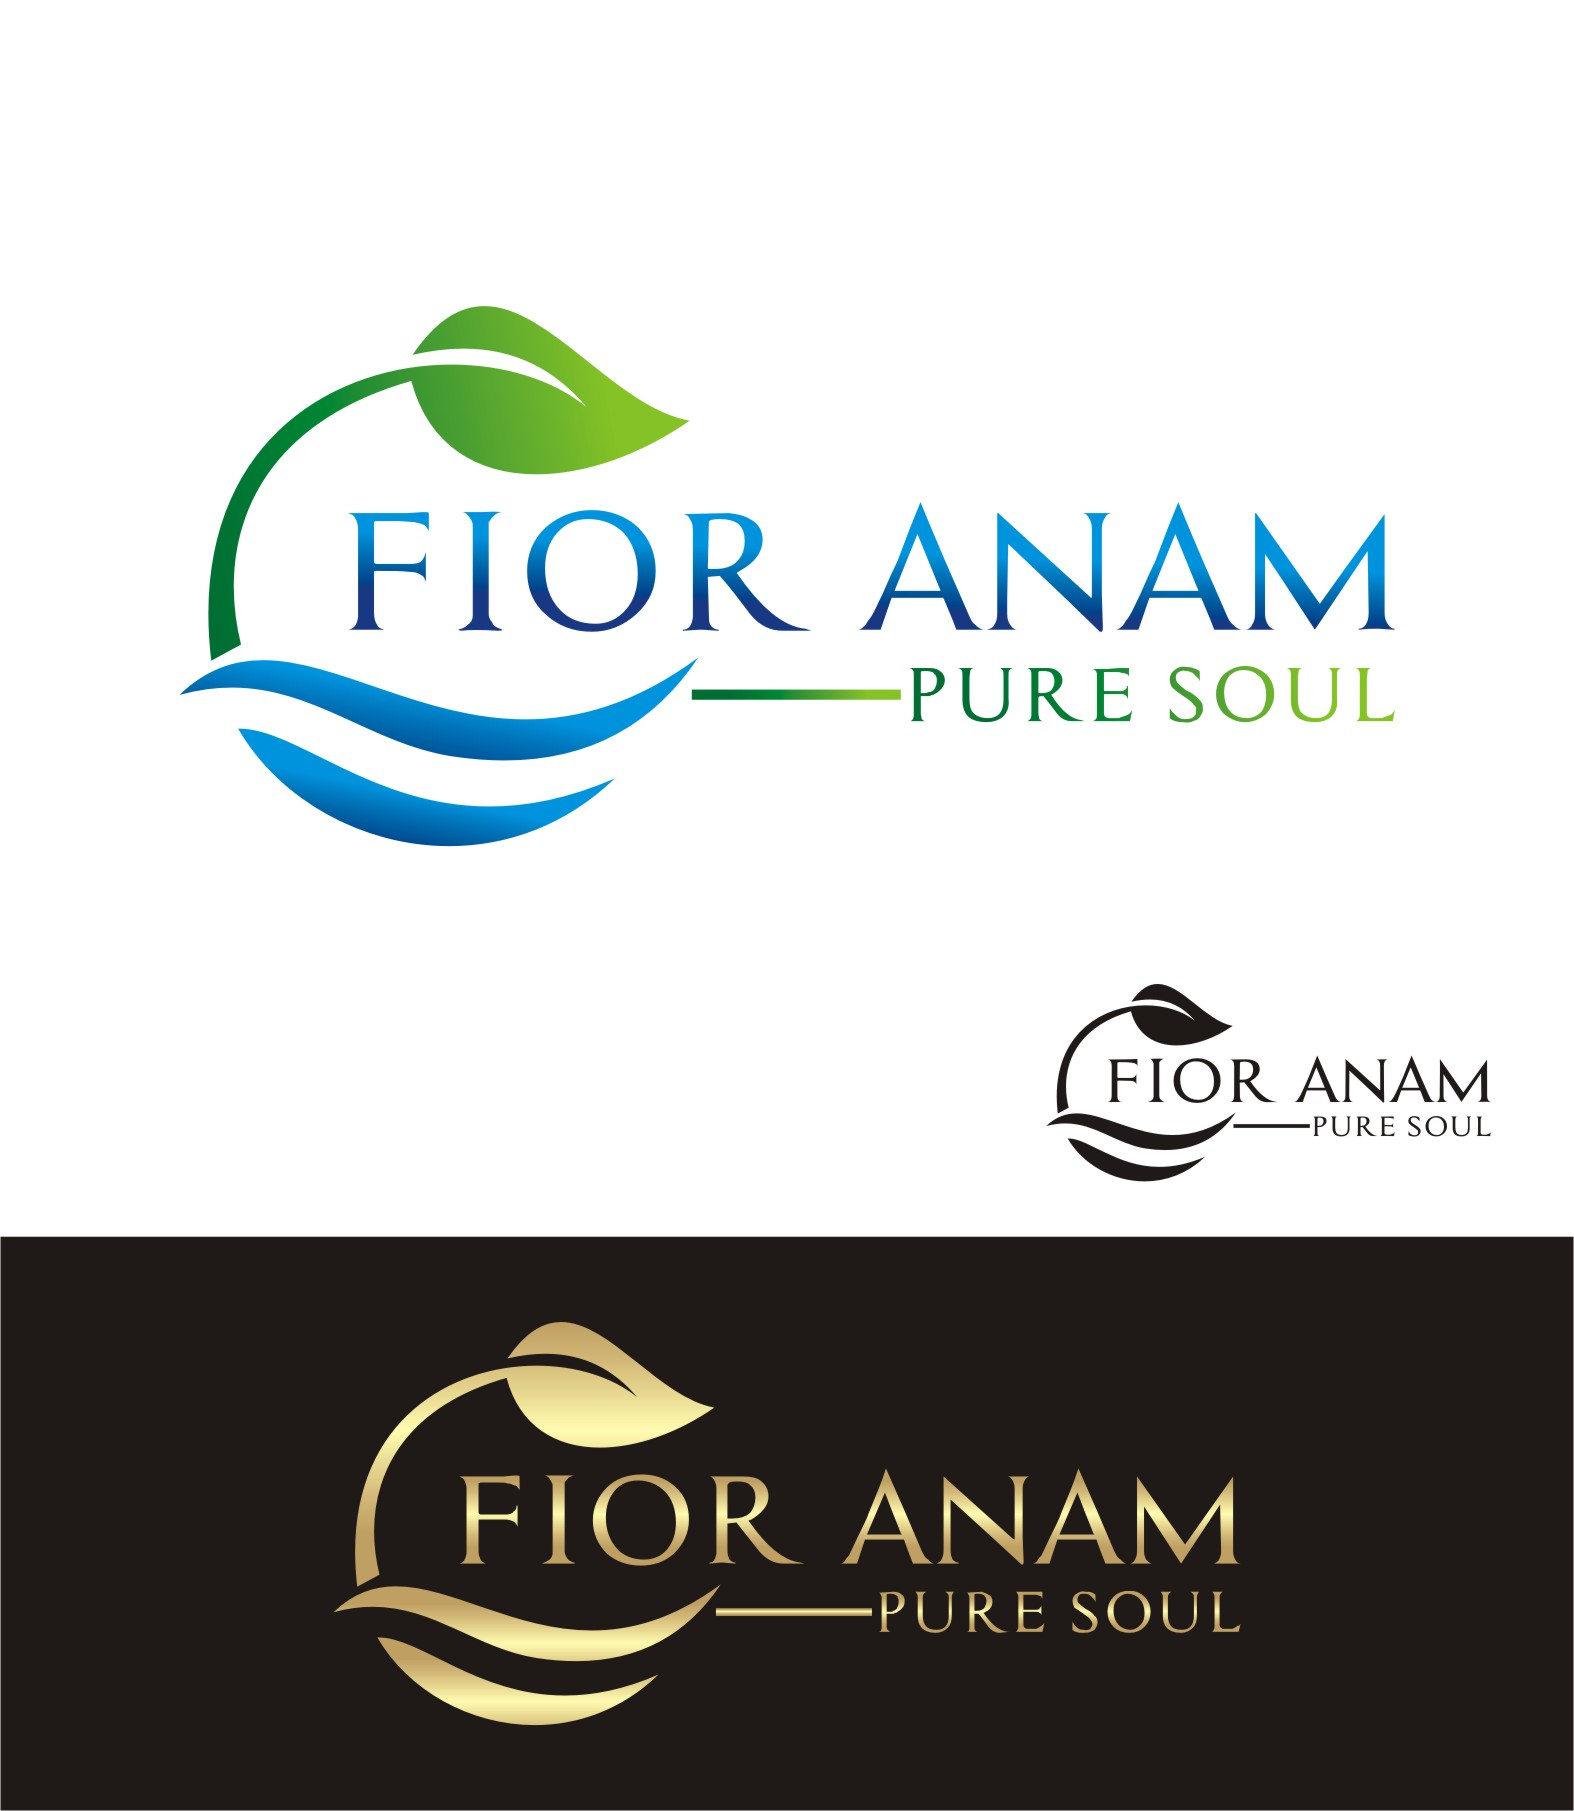 Logo Design by Lynx Graphics - Entry No. 315 in the Logo Design Contest Creative Logo Design for Fior Anam.